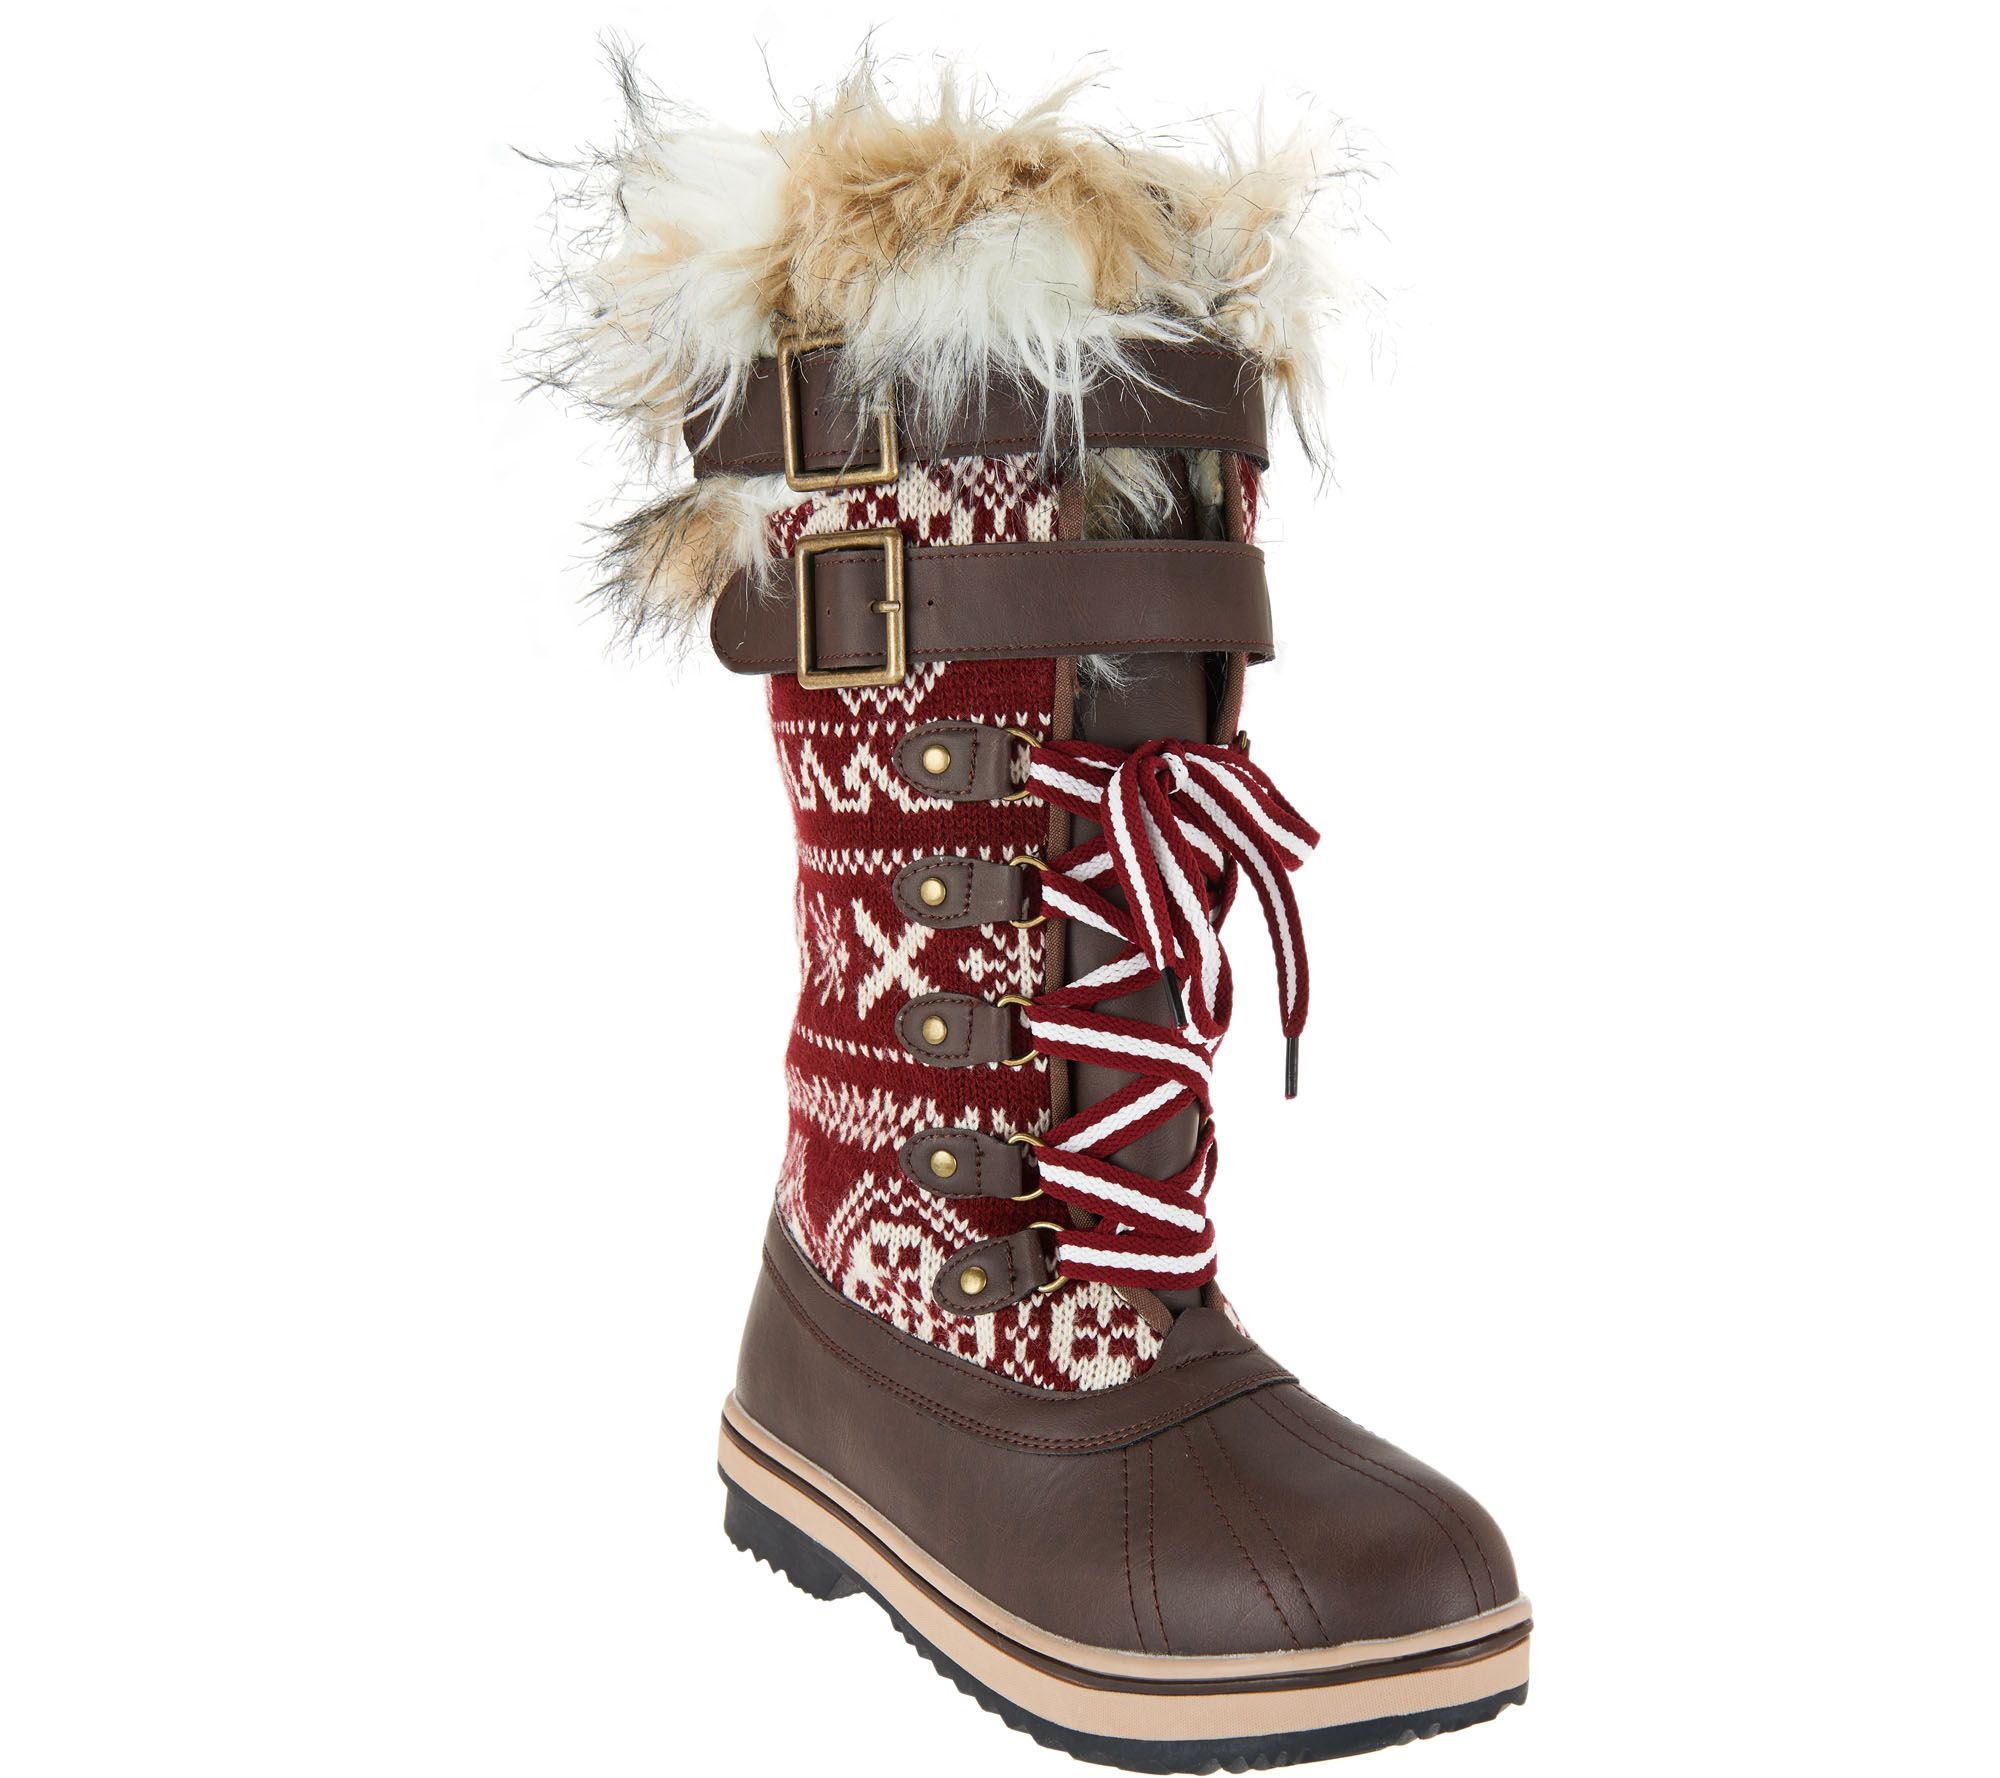 MUK LUKS Allie Lace-Up Knit Snow Boots with Thinsulate - Page 1 — QVC.com 8ecbcaed9